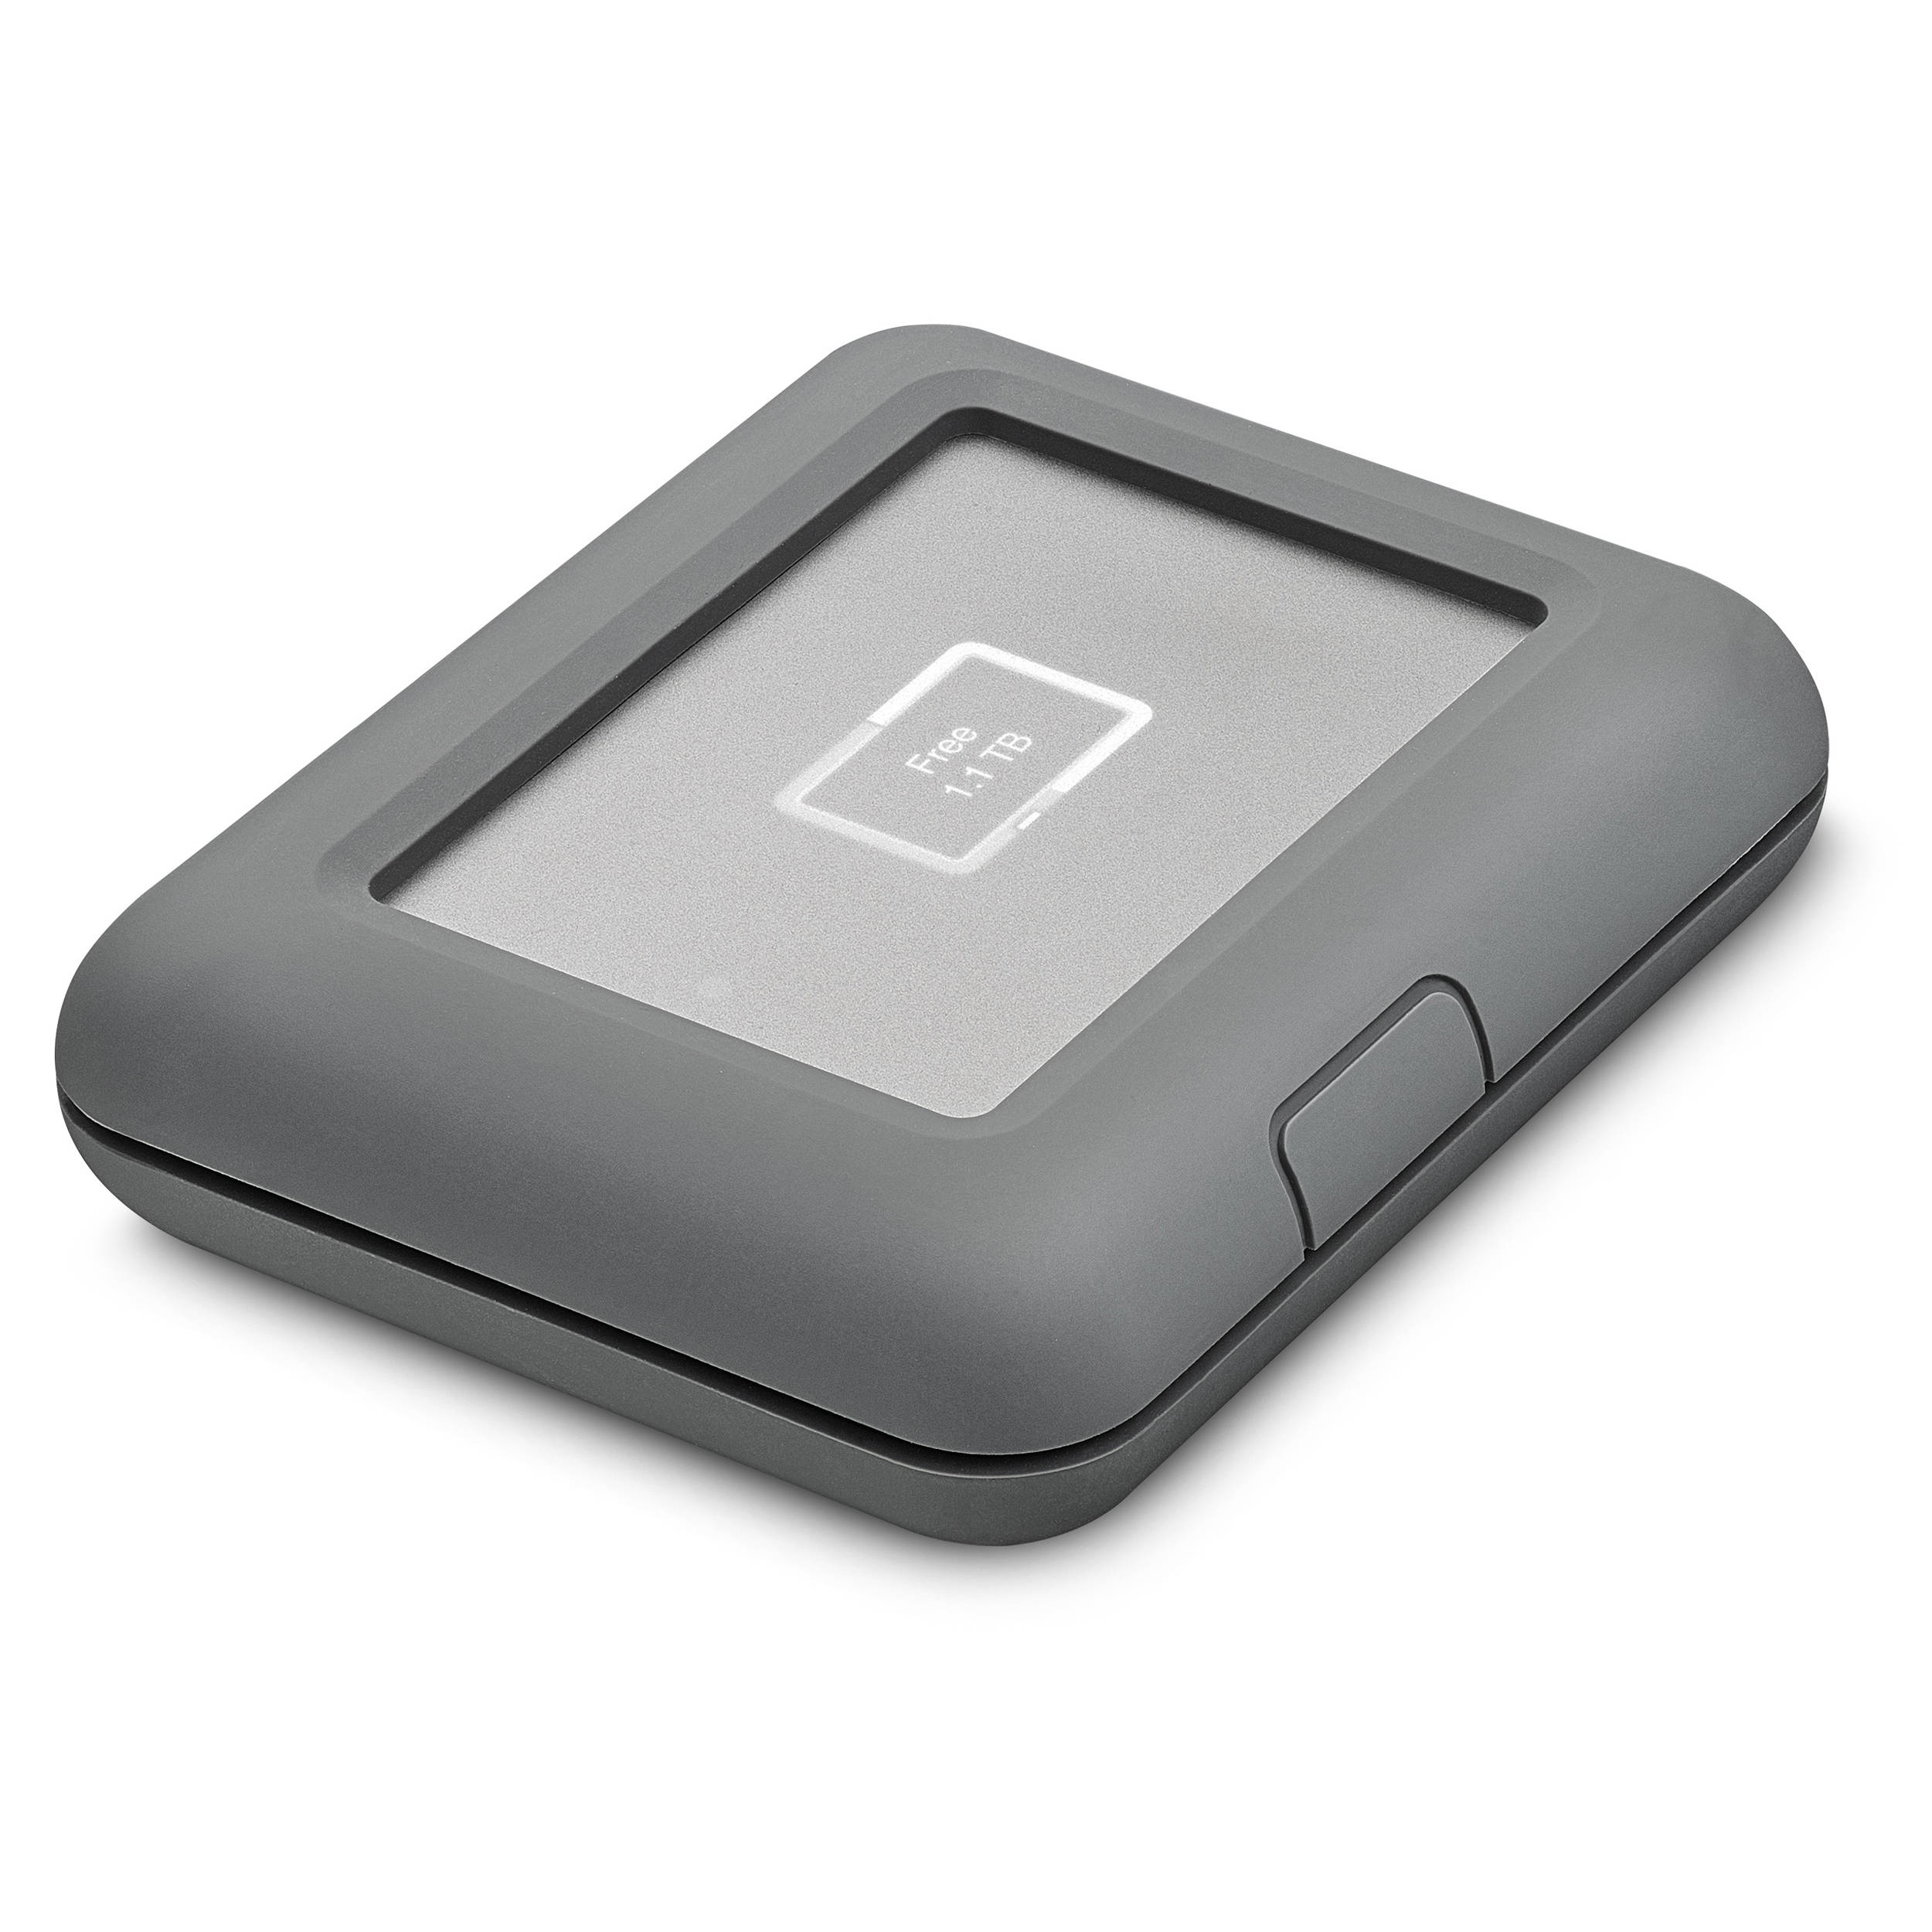 LaCie DJI Copilot Portable Hard Drive